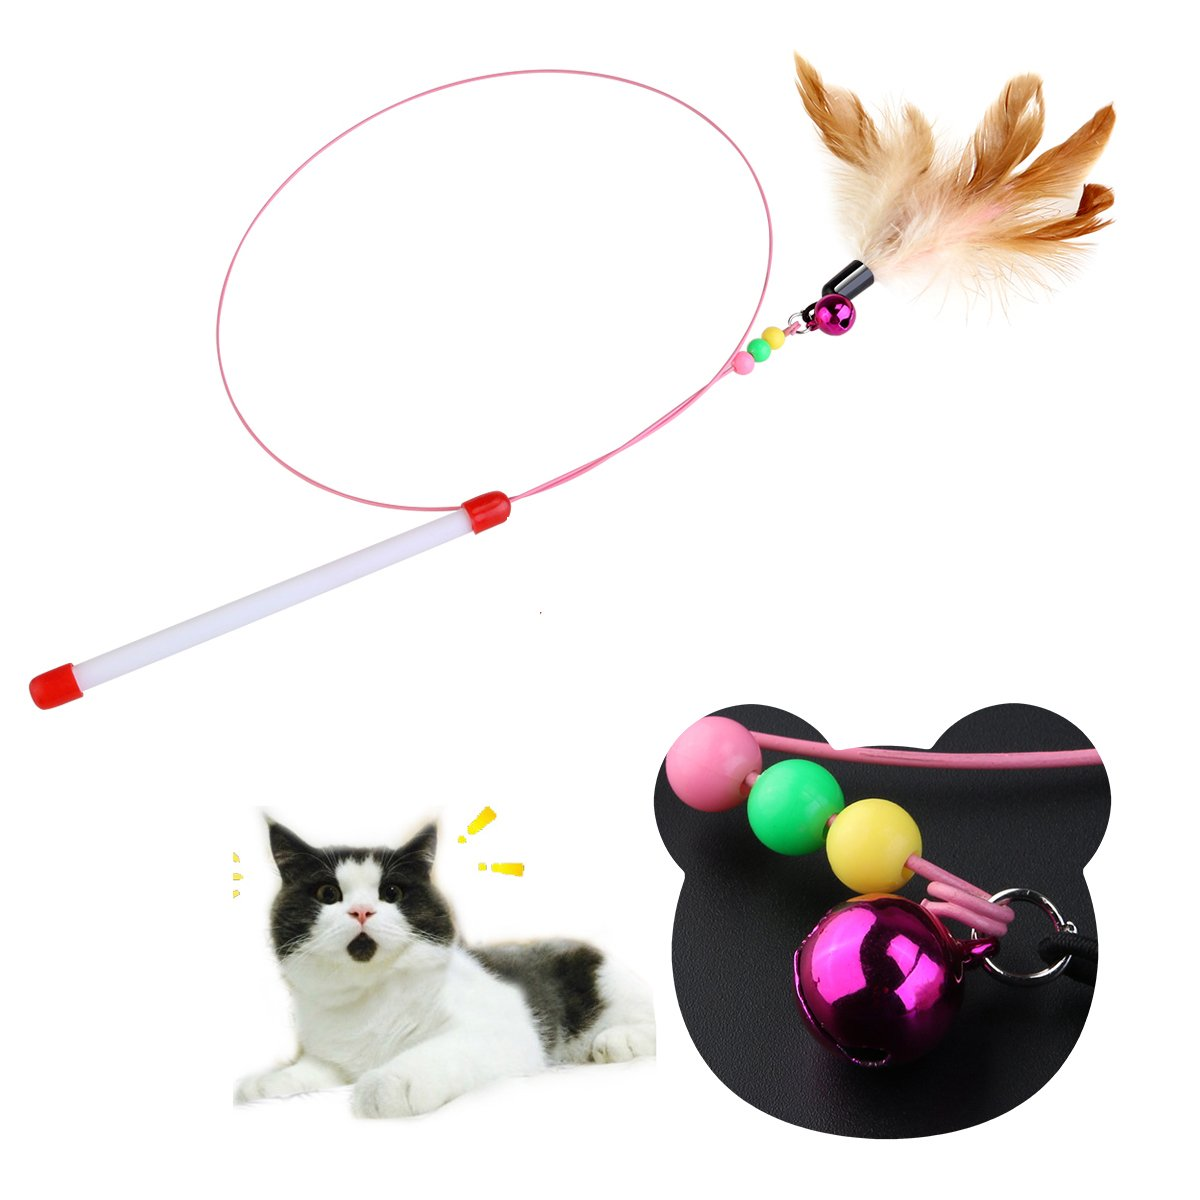 Lovely Love Heart Shape Cat Toys Cute Funny Colorful Rod Teaser Wand Plastic Pet Toys For Cats Interactive Stick Cat Home & Garden